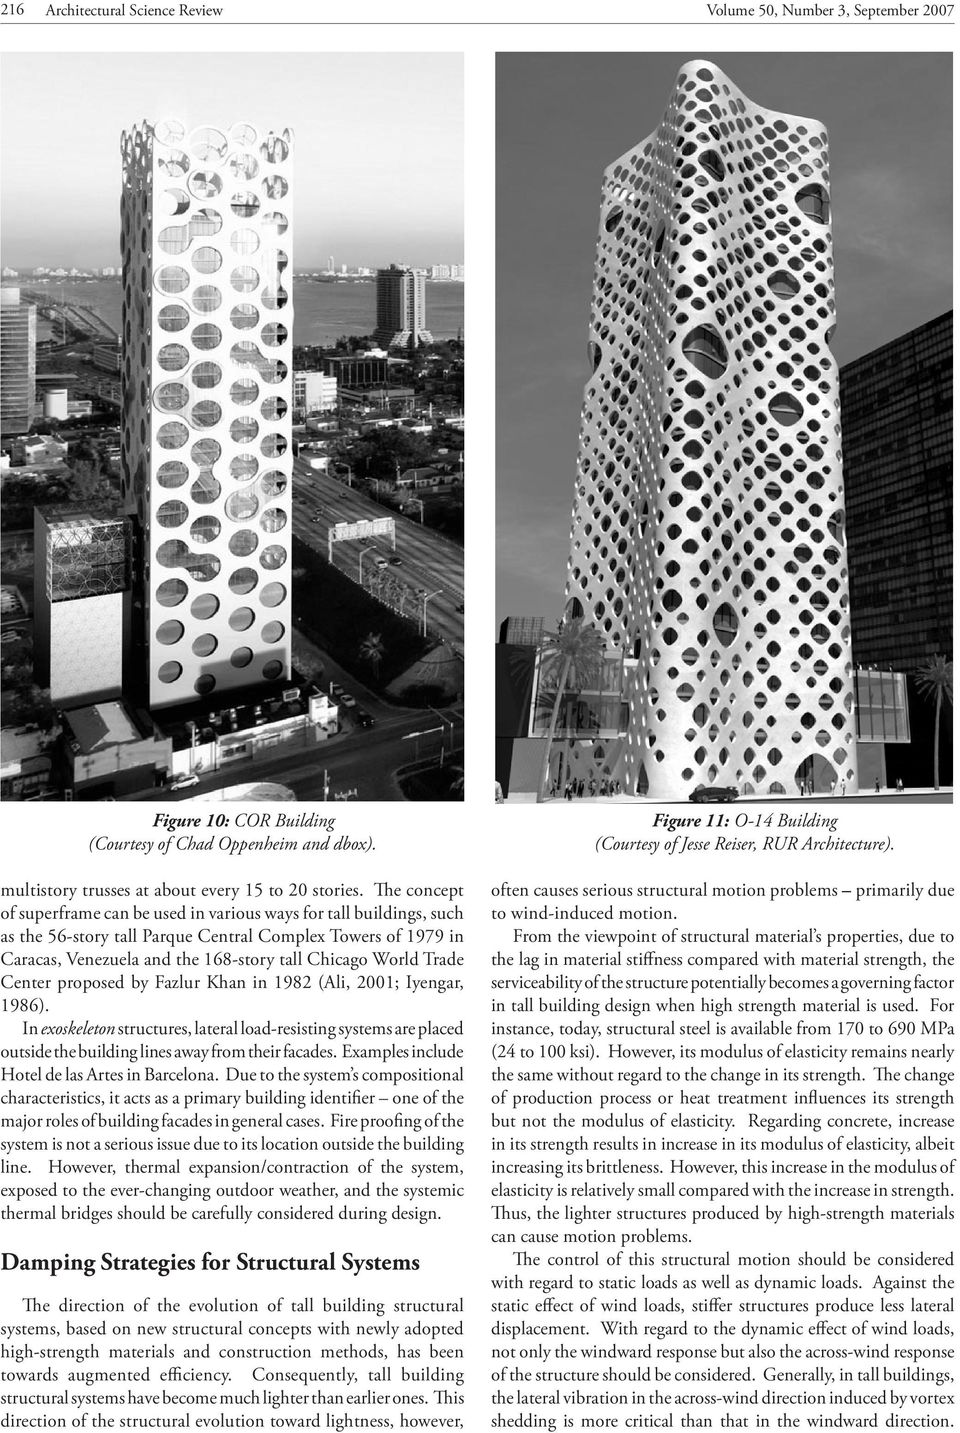 The concept of superframe can be used in various ways for tall buildings, such as the 56-story tall Parque Central Complex Towers of 1979 in Caracas, Venezuela and the 168-story tall Chicago World